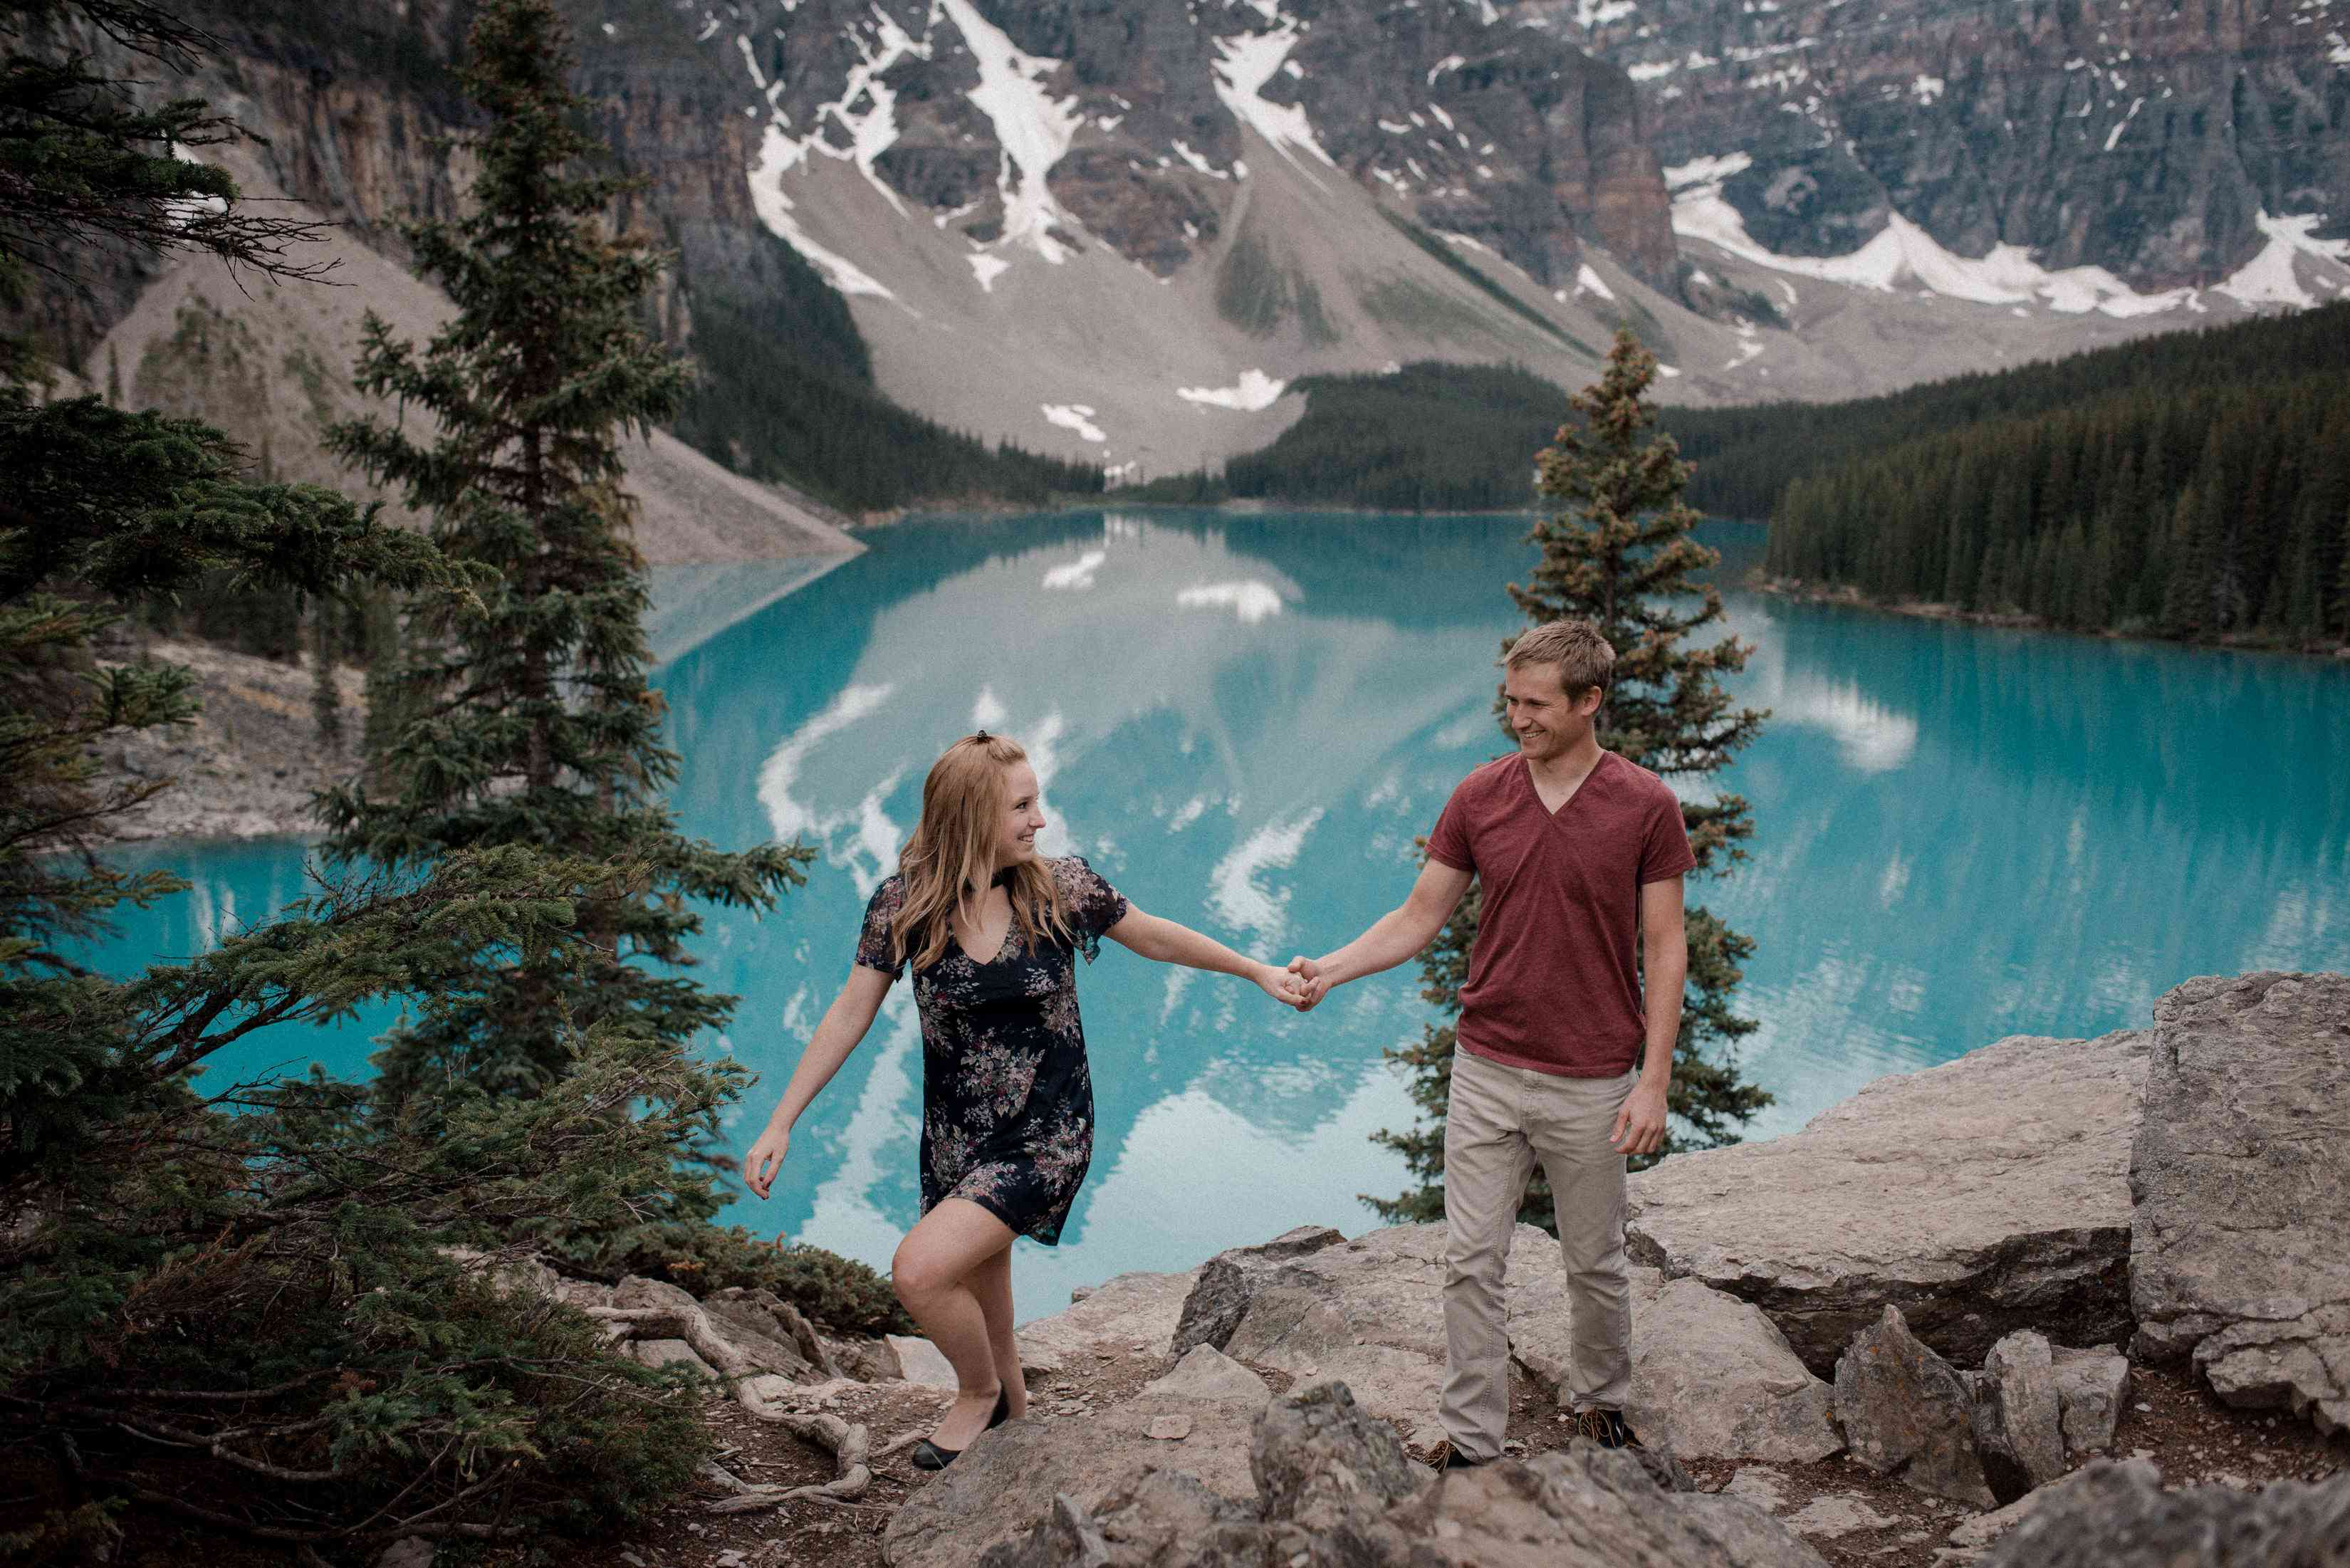 Couple holding hands with turquoise lake in background